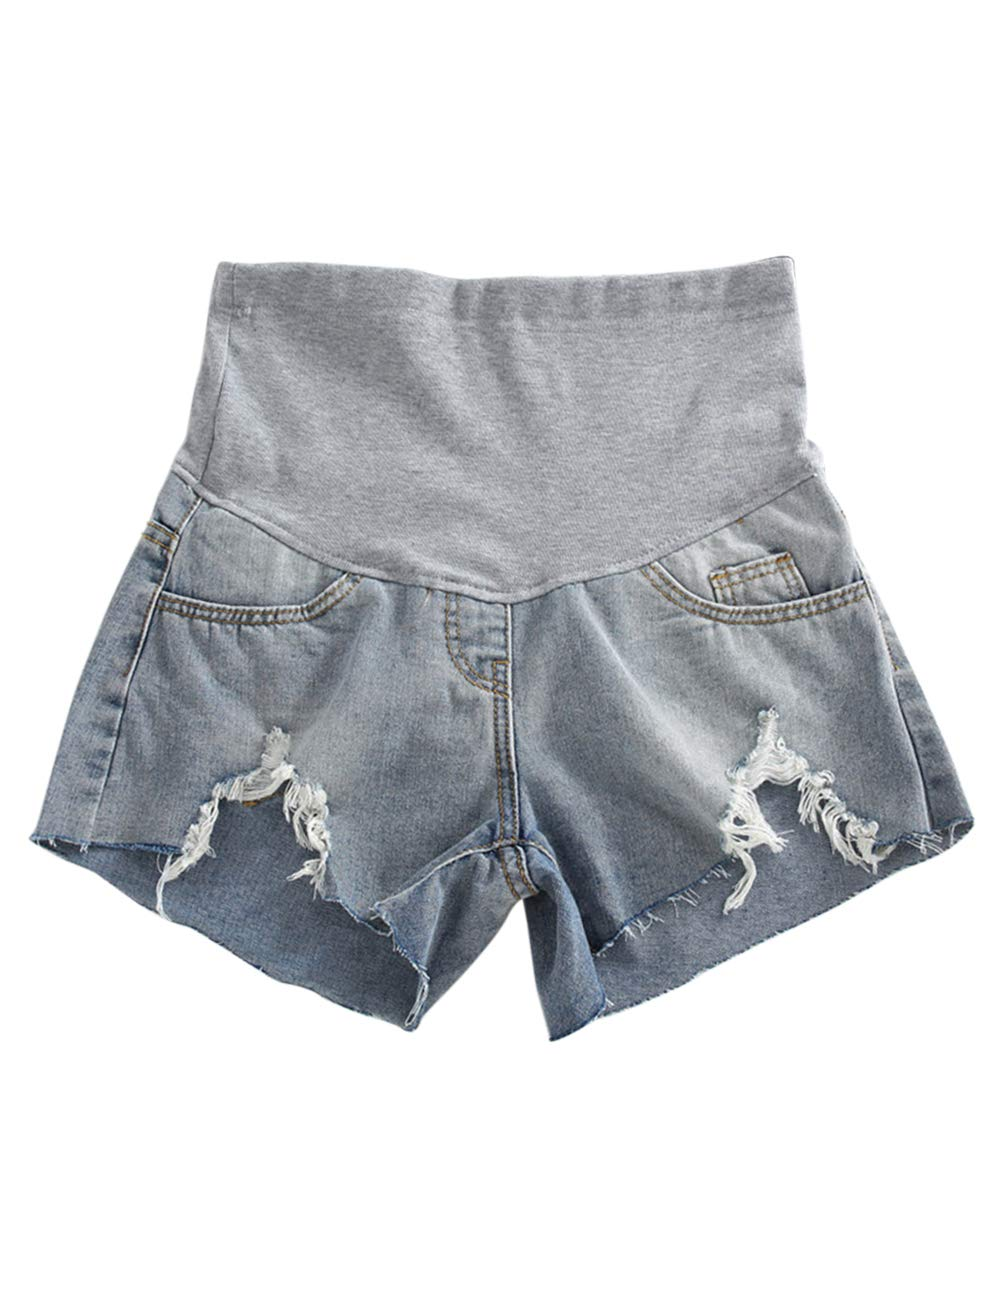 Zhhlinyuan Maternity Shorts Care Belly - Casual Breathable Relaxed Fit Jean Short